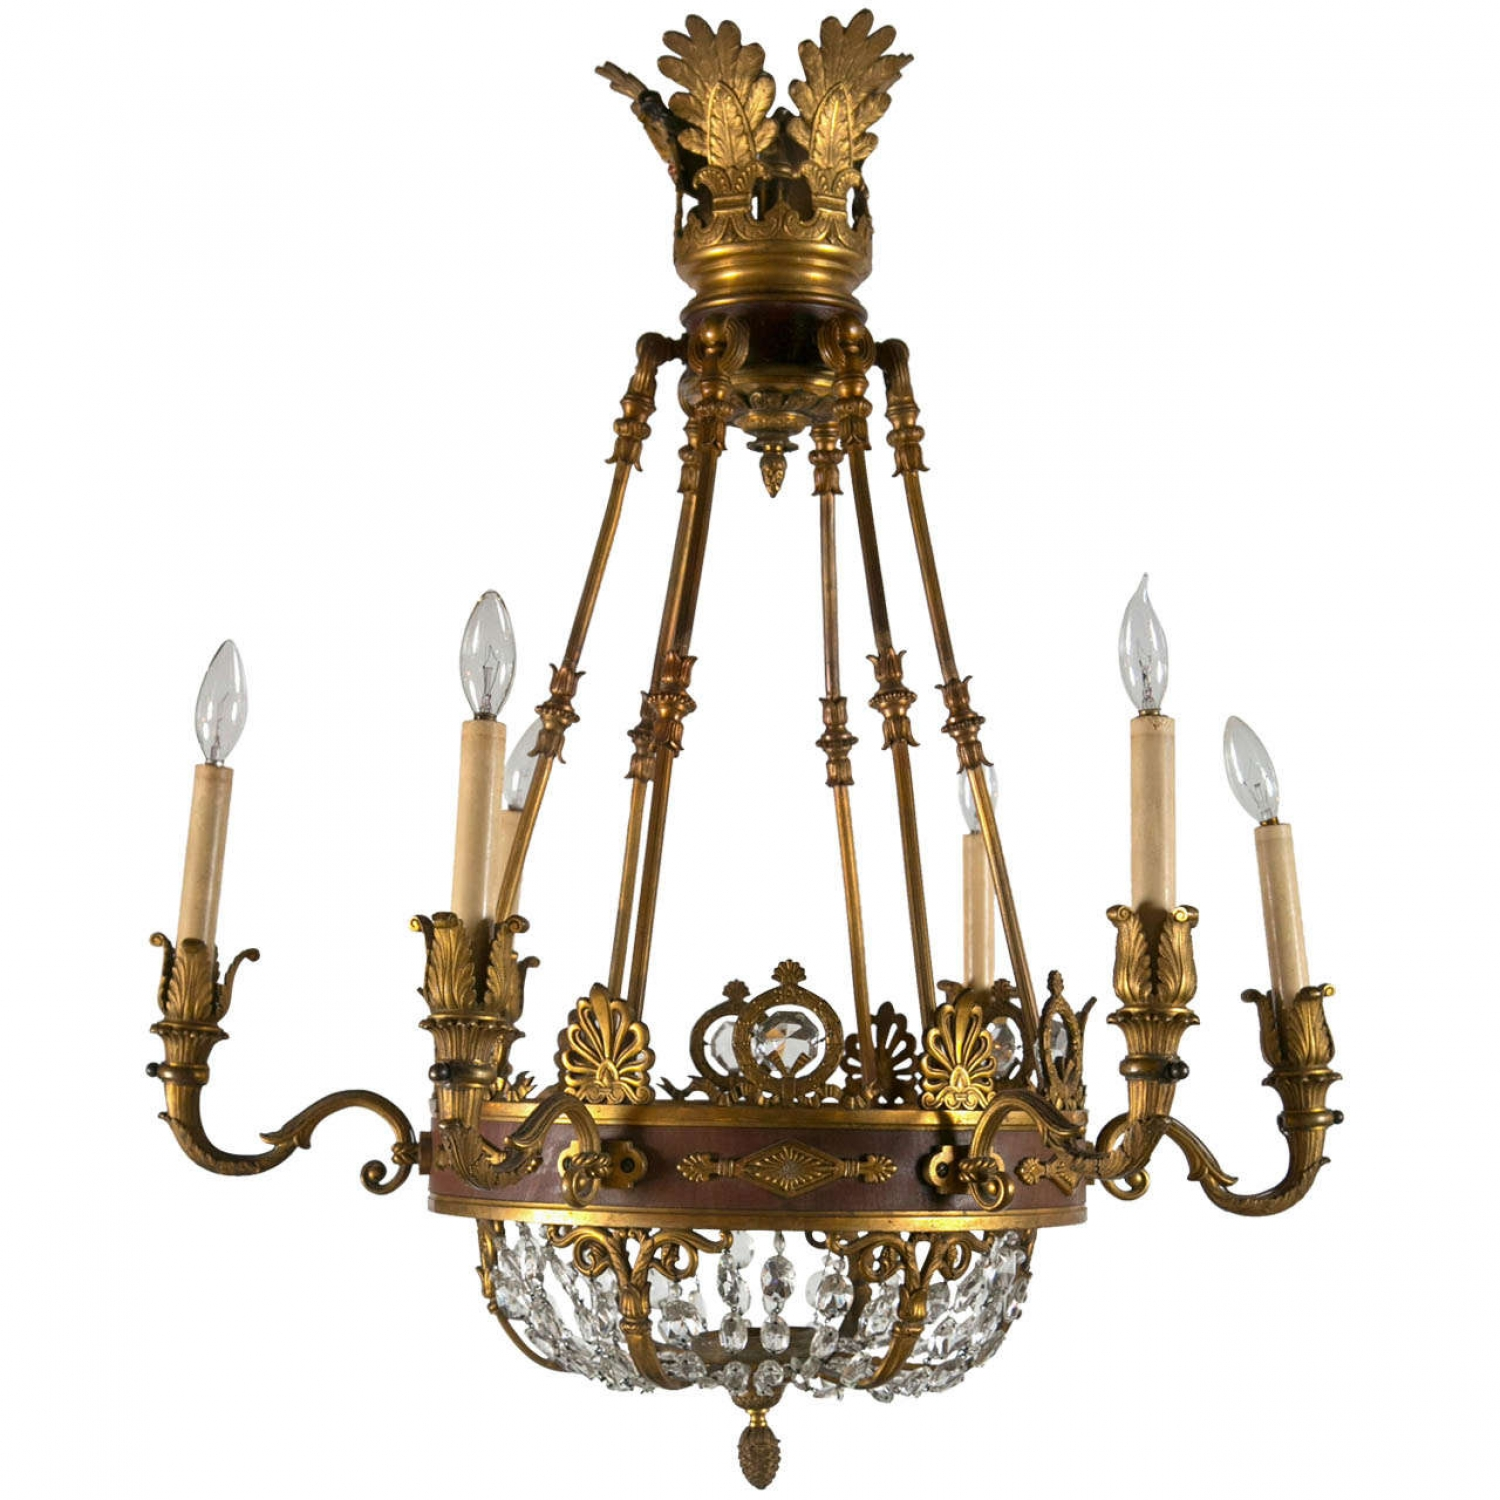 Empire Antique Chandelier revival - image 3 - Empire Antique Chandelier Revival - Norfolk Decorative Antiques